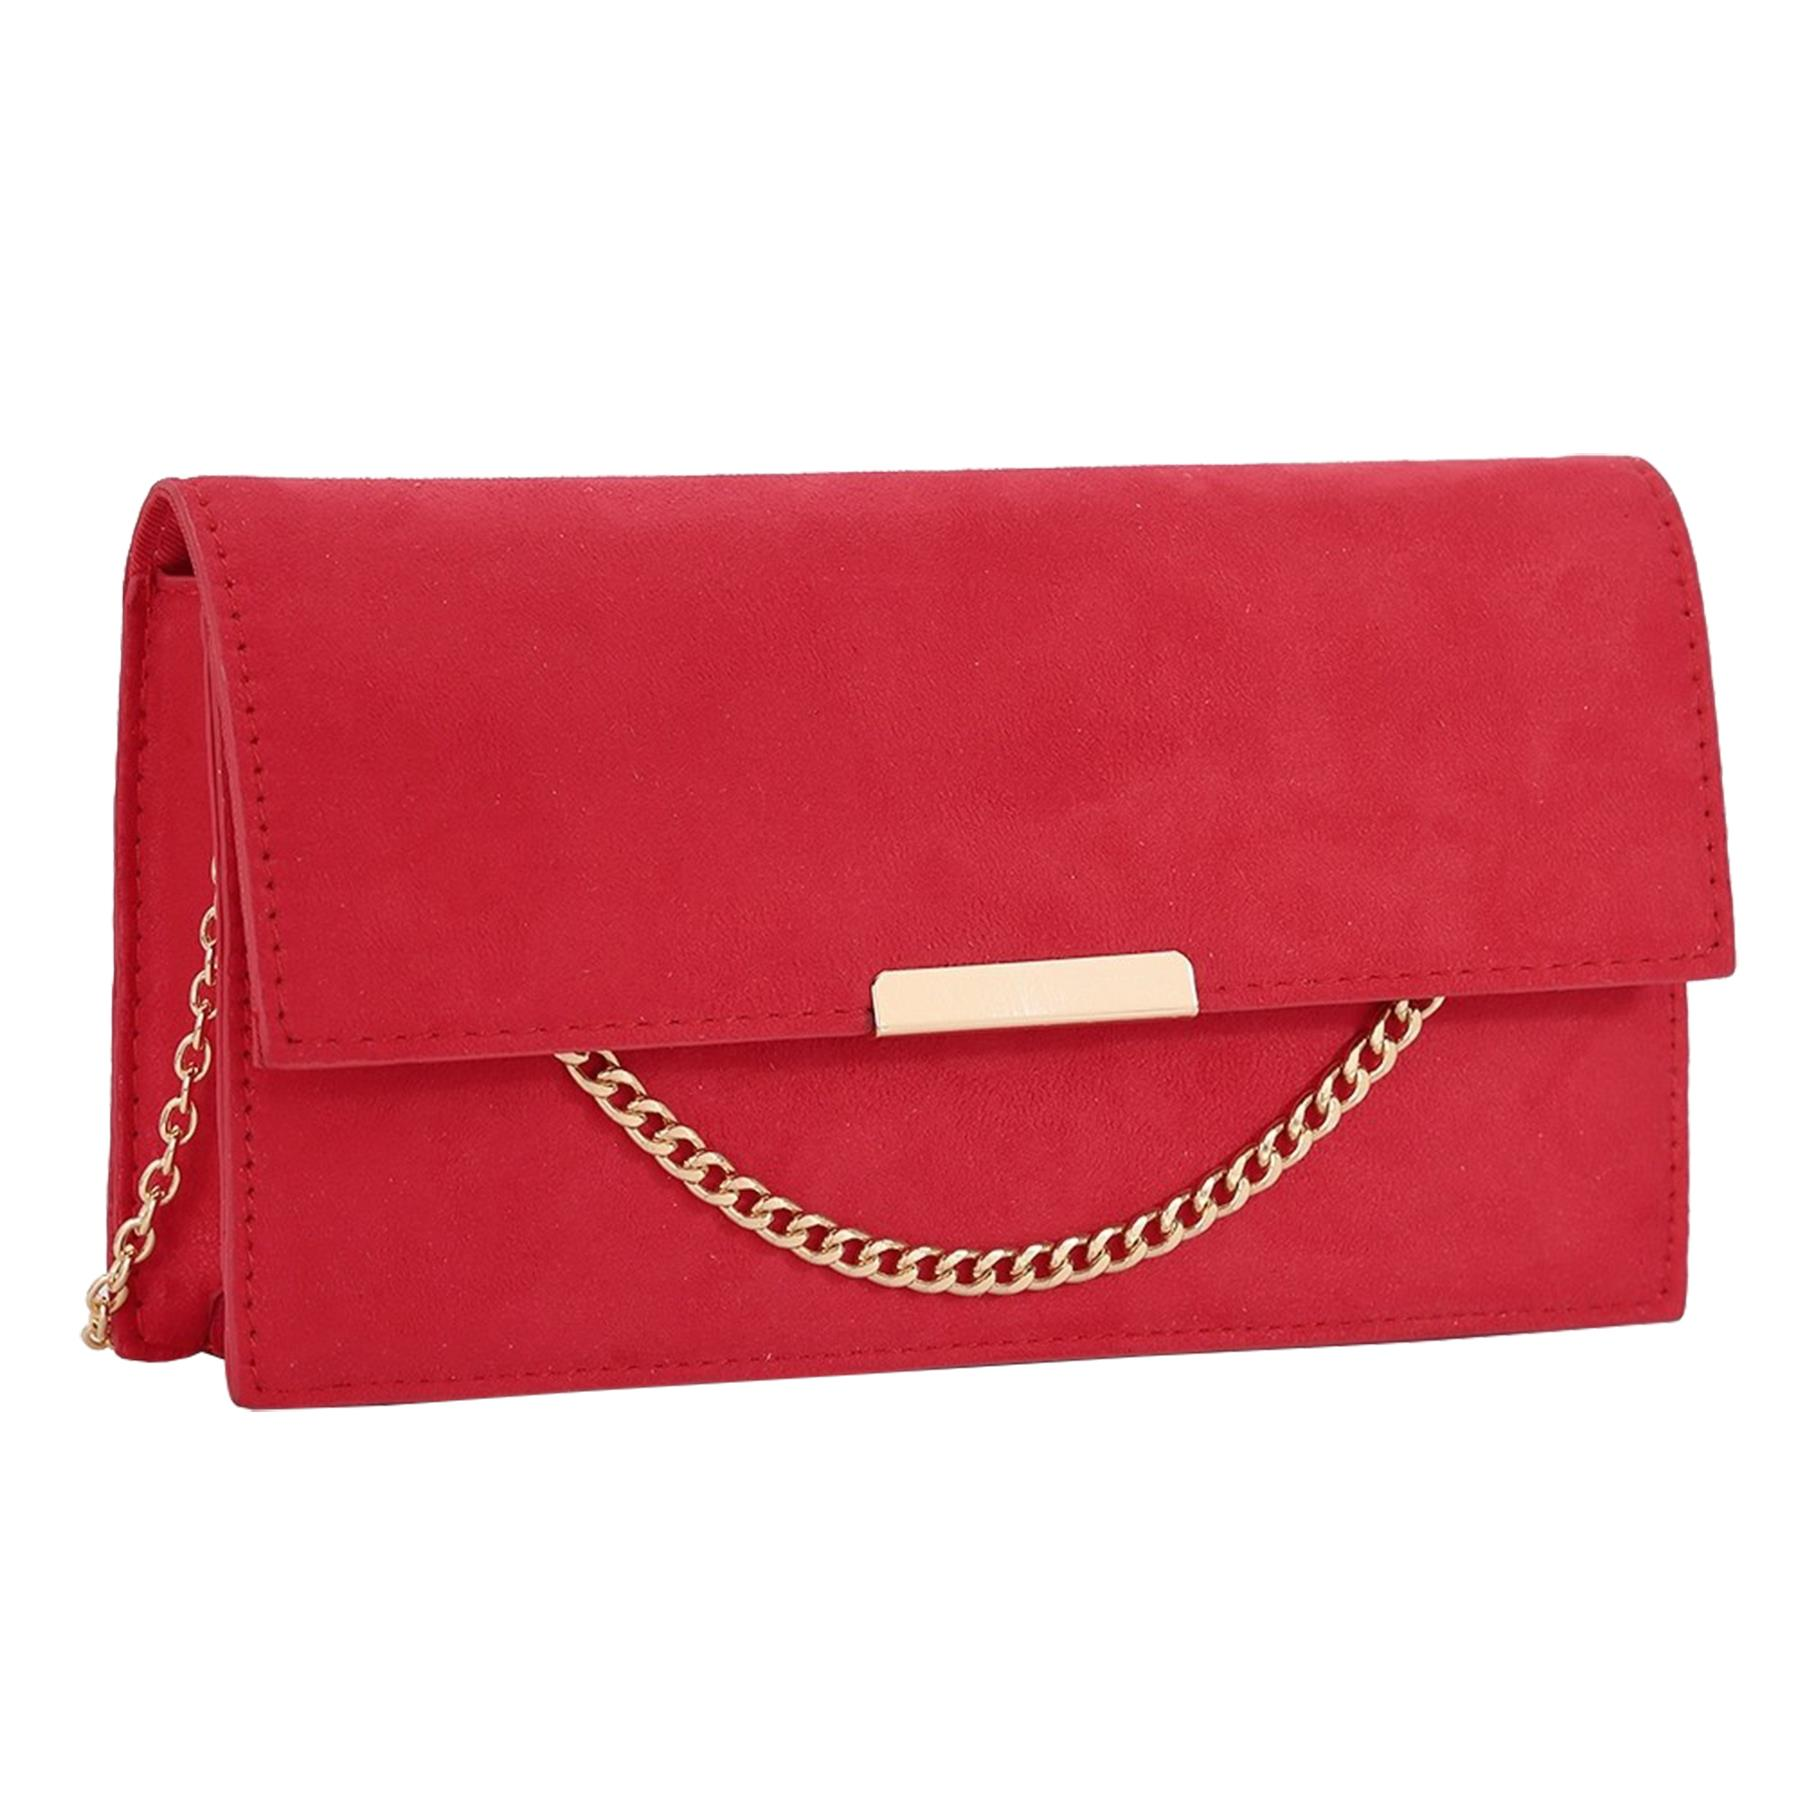 New-Synthetic-Suede-Metallic-Trim-Chain-Detail-Evening-Classic-Clutch-Bag thumbnail 12